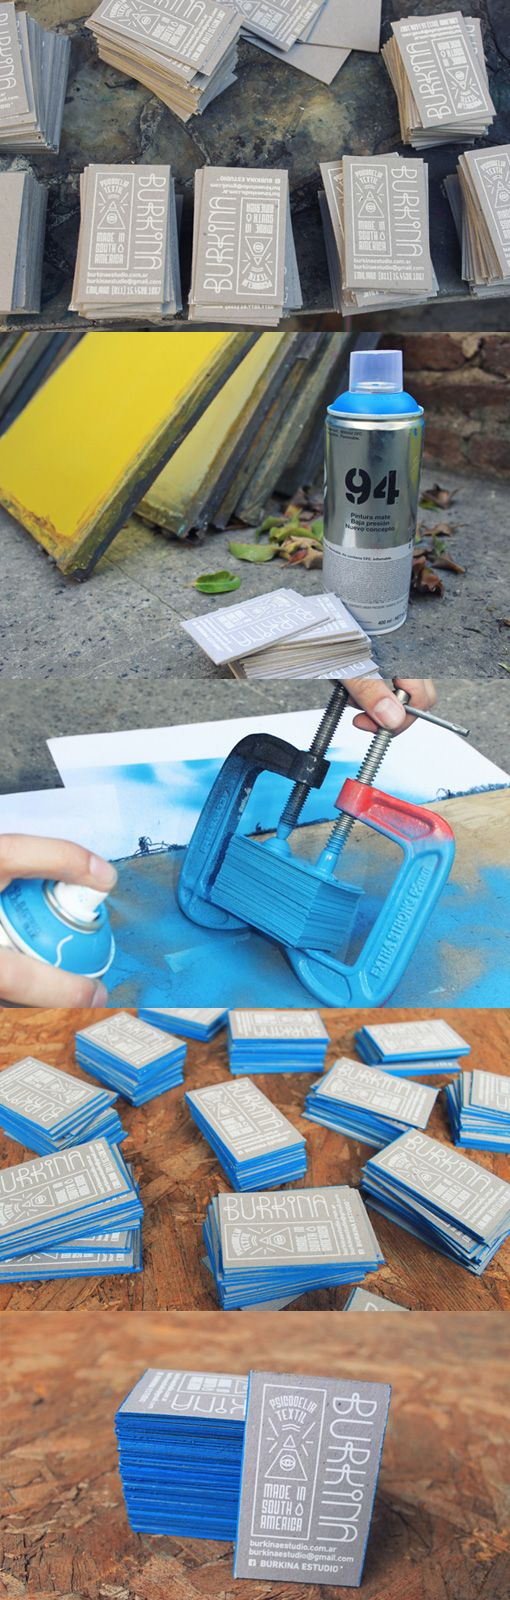 Handmade Blue Edged Design business cards .. .spray paint the best way to go to get the edge!